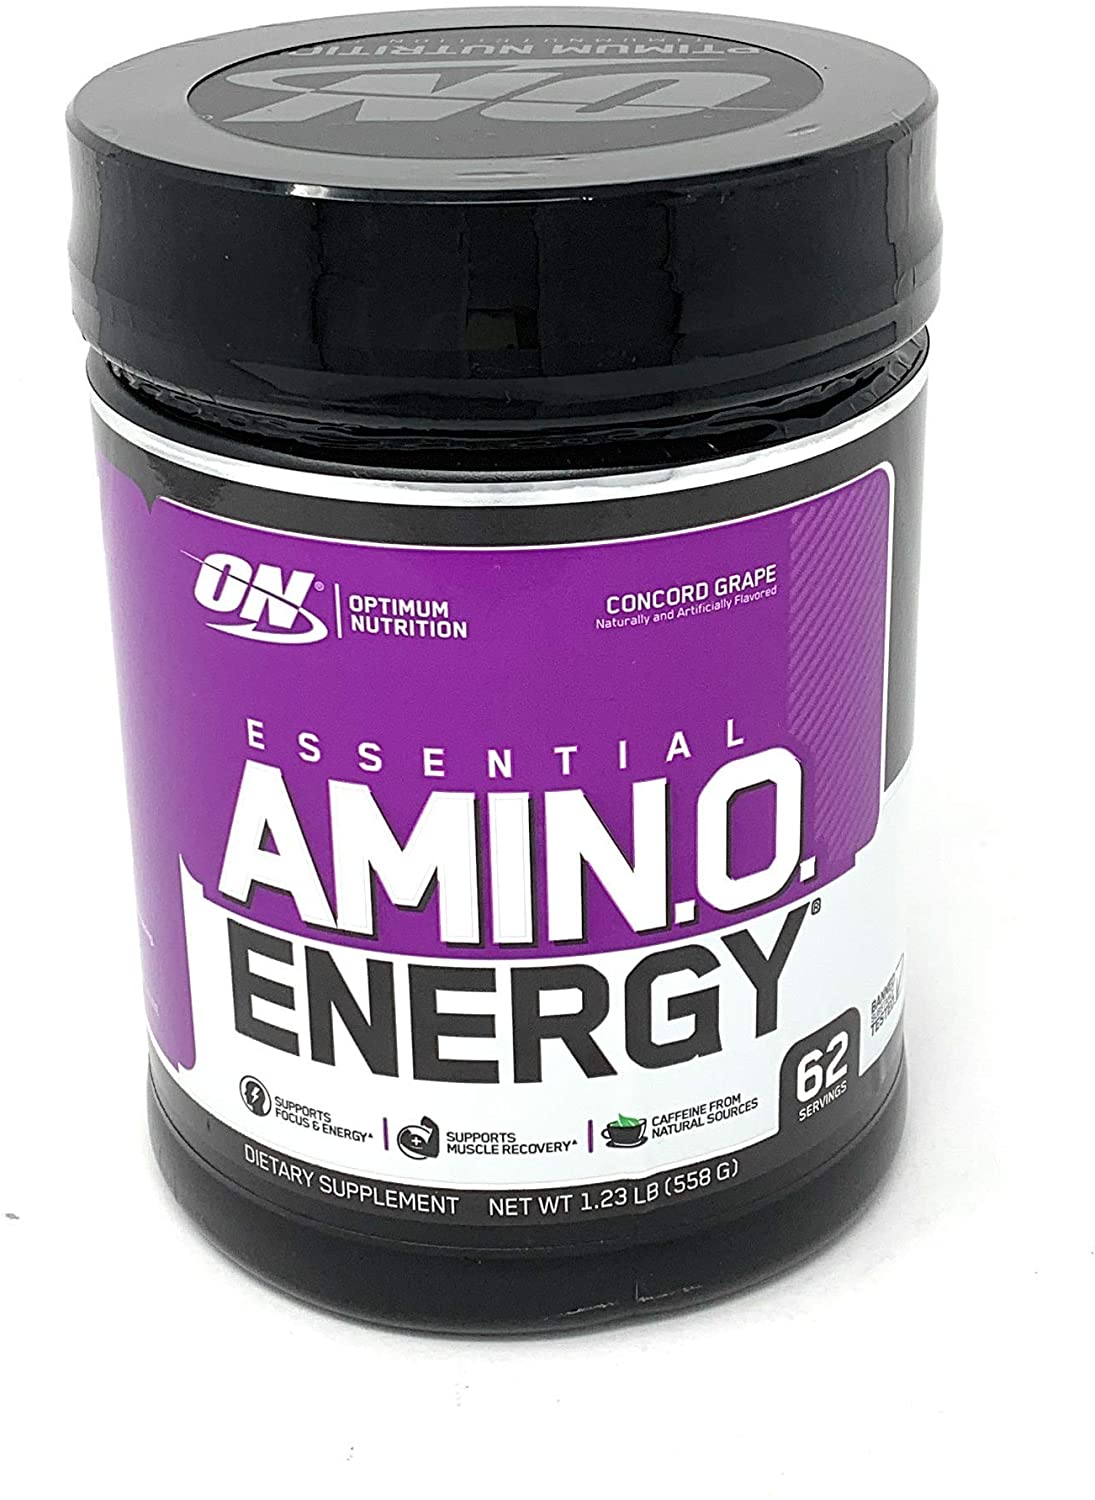 Optimum Nutrition Essential Amino Energy Concord Grape Preworkout and Postworkout Recovery